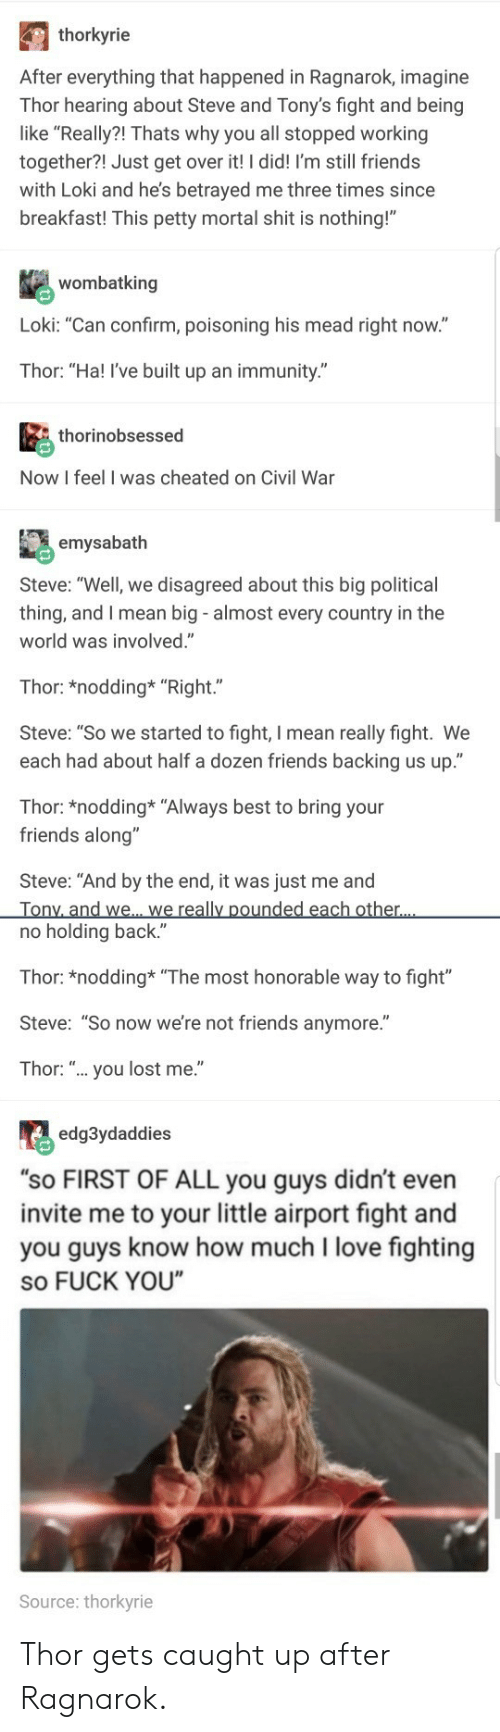 """honorable: thorkyrie  After everything that happened in Ragnarok, imagine  Thor hearing about Steve and Tony's fight and being  like """"Really?! Thats why you all stopped working  together?! Just get over it! I did! I'm still friends  with Loki and he's betrayed me three times since  breakfast! This petty mortal shit is nothing!""""  wombatking  Loki: """"Can confirm, poisoning his mead right now.""""  Thor: """"Ha! I've built up an immunity.""""  thorinobsessed  Now I feel I was cheated on Civil War  emysabath  Steve: """"Well, we disagreed about this big political  thing, and I mean big - almost every country in the  world was involved.""""  Thor: *nodding* """"Right.""""  Steve: """"So we started to fight, I mean really fight. We  each had about half a dozen friends backing us up.""""  Thor: *nodding* """"Always best to bring your  friends along""""  Steve: """"And by the end, it was just me and  no holding back.""""  Thor: *nodding """"The most honorable way to fight""""  Steve: """"So now we're not friends anymore.""""  Thor: """".. you lost me.""""  edg3ydaddies  """"sO FIRST OF ALL you guys didn't even  invite me to your little airport fight and  you guys know how much I love fighting  so FUCK YOU  Source: thorkyrie Thor gets caught up after Ragnarok."""